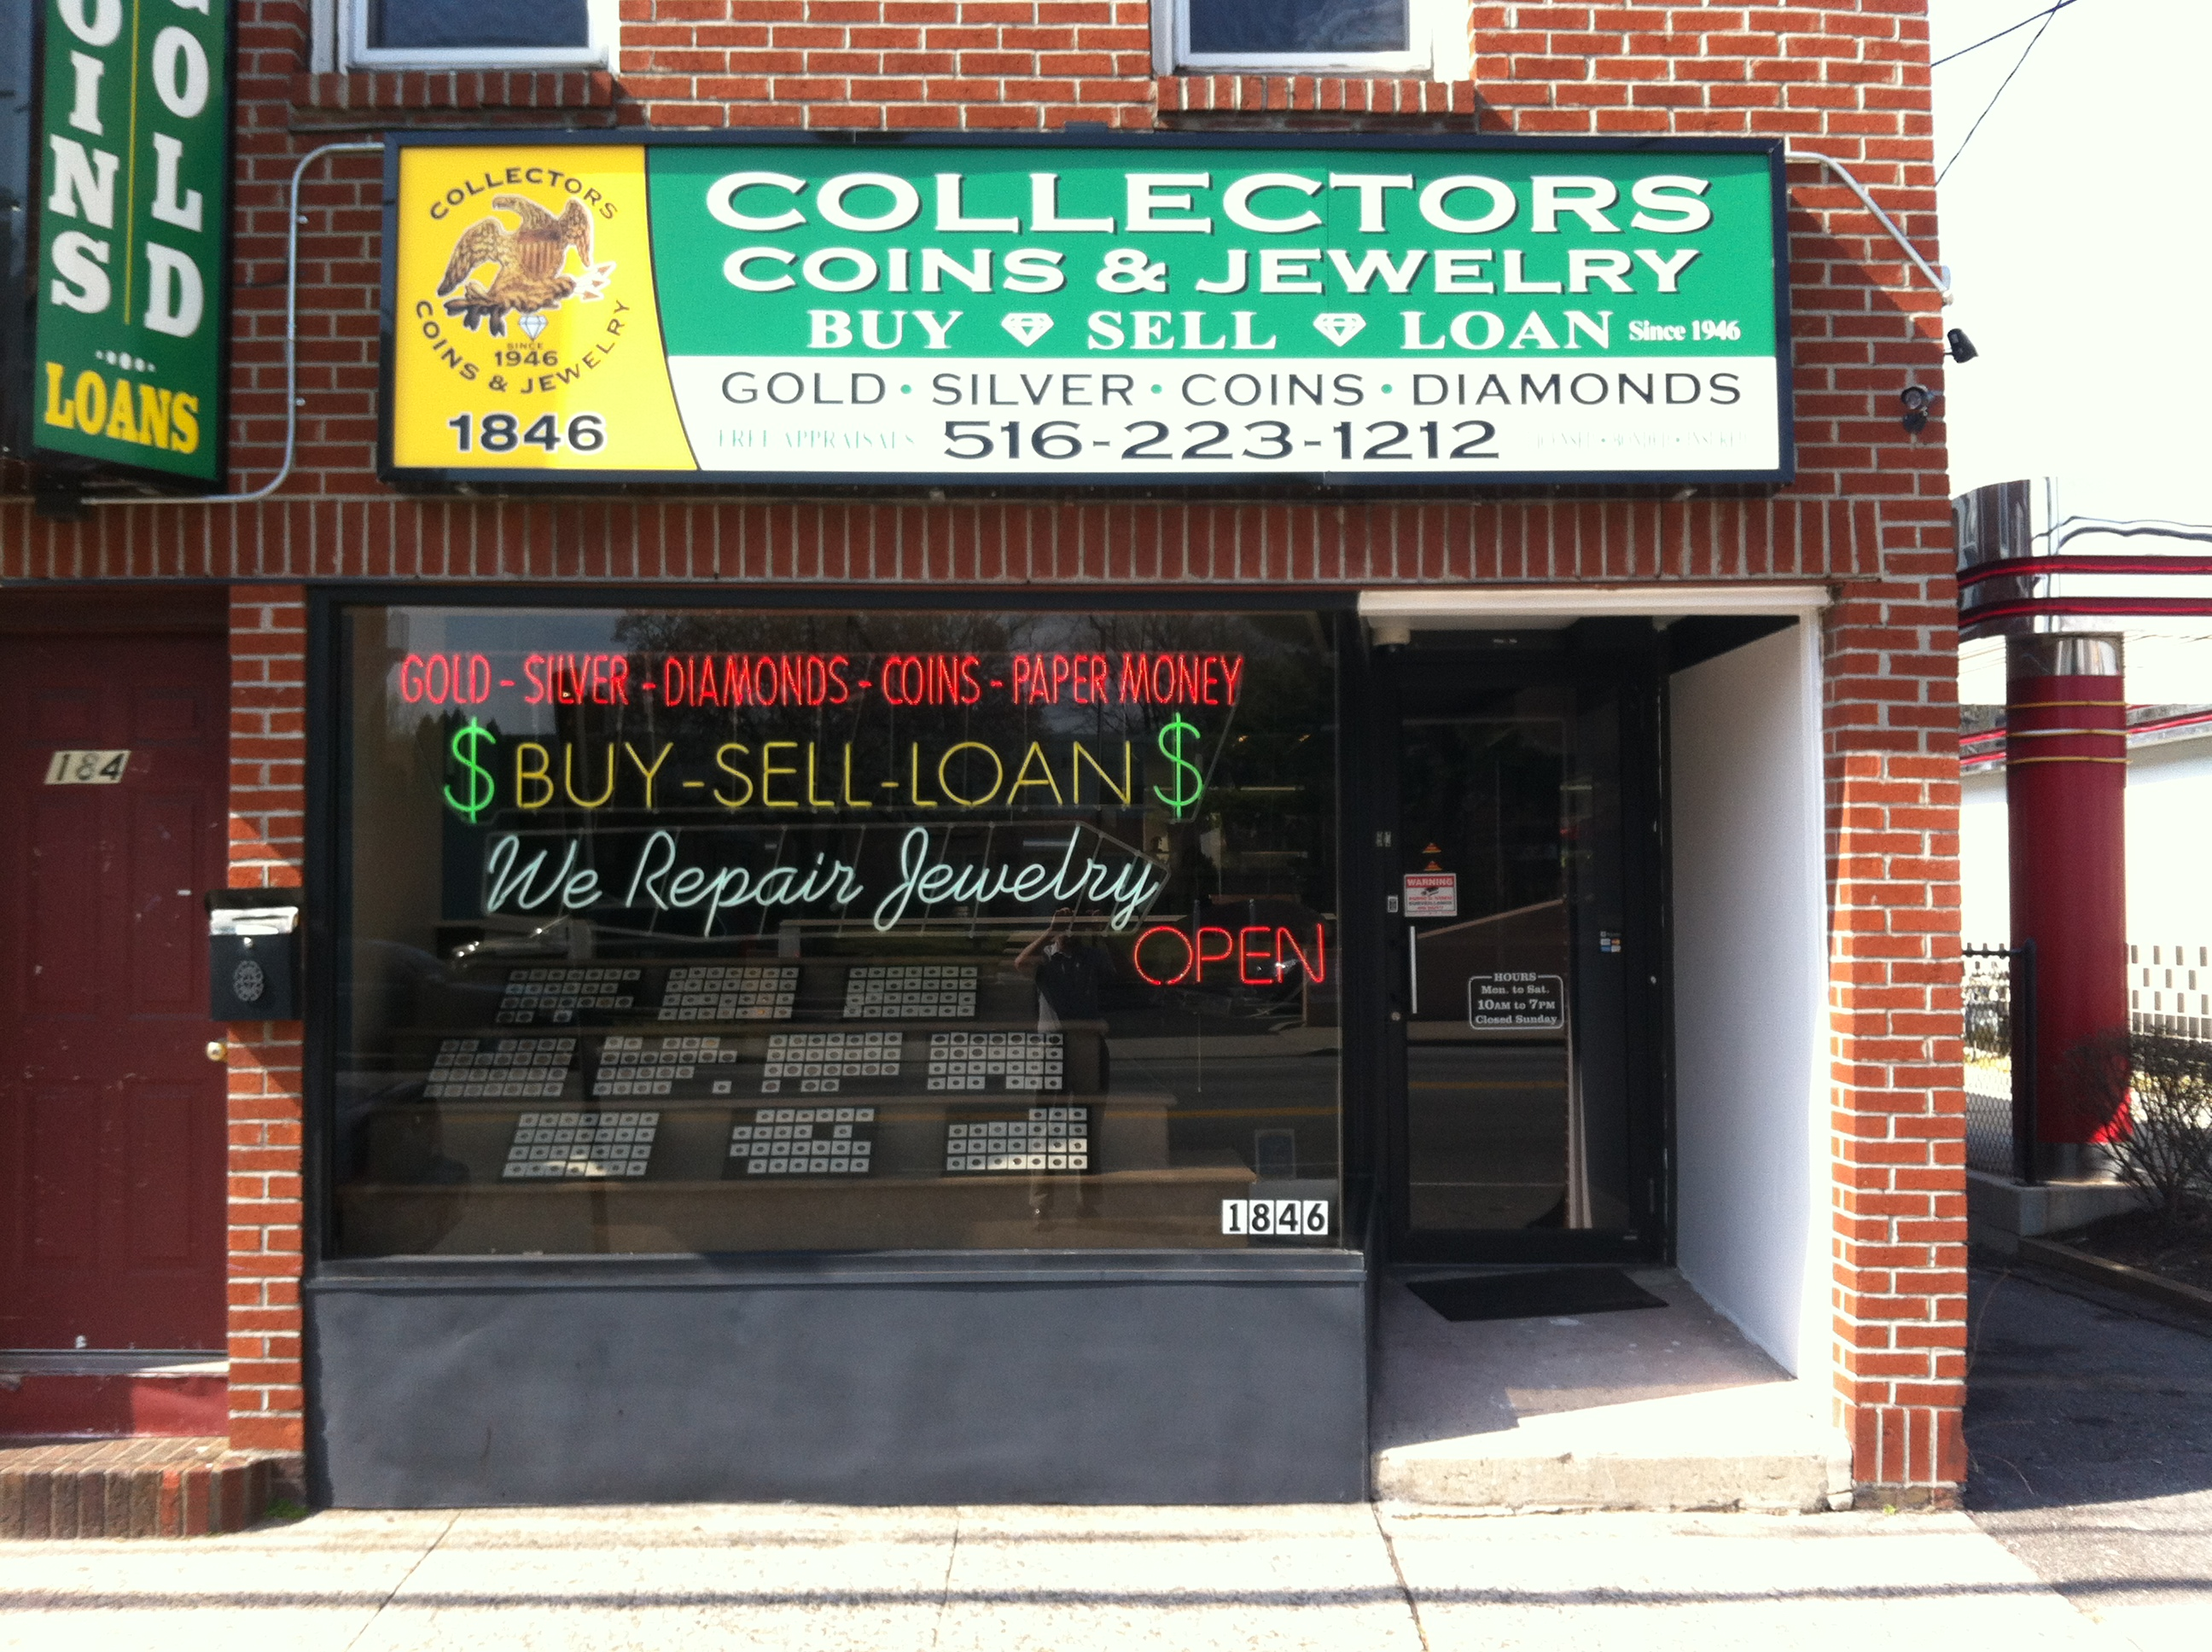 Collector's Coins & Jewelry